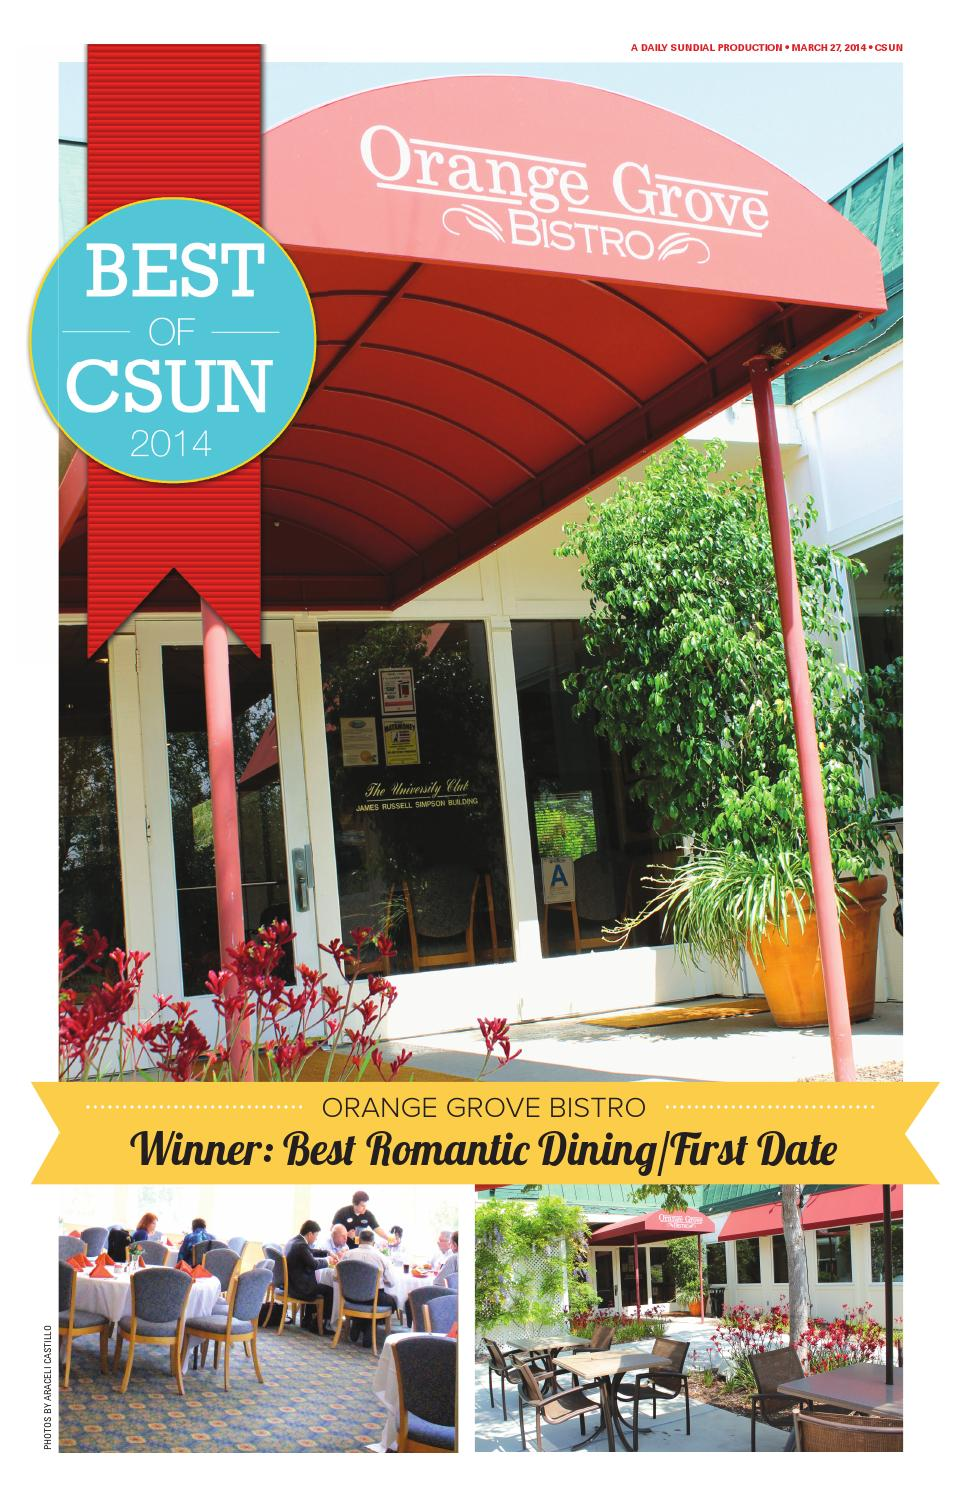 Is CSUN a good university for getting into the medical field? To be an ER physician?